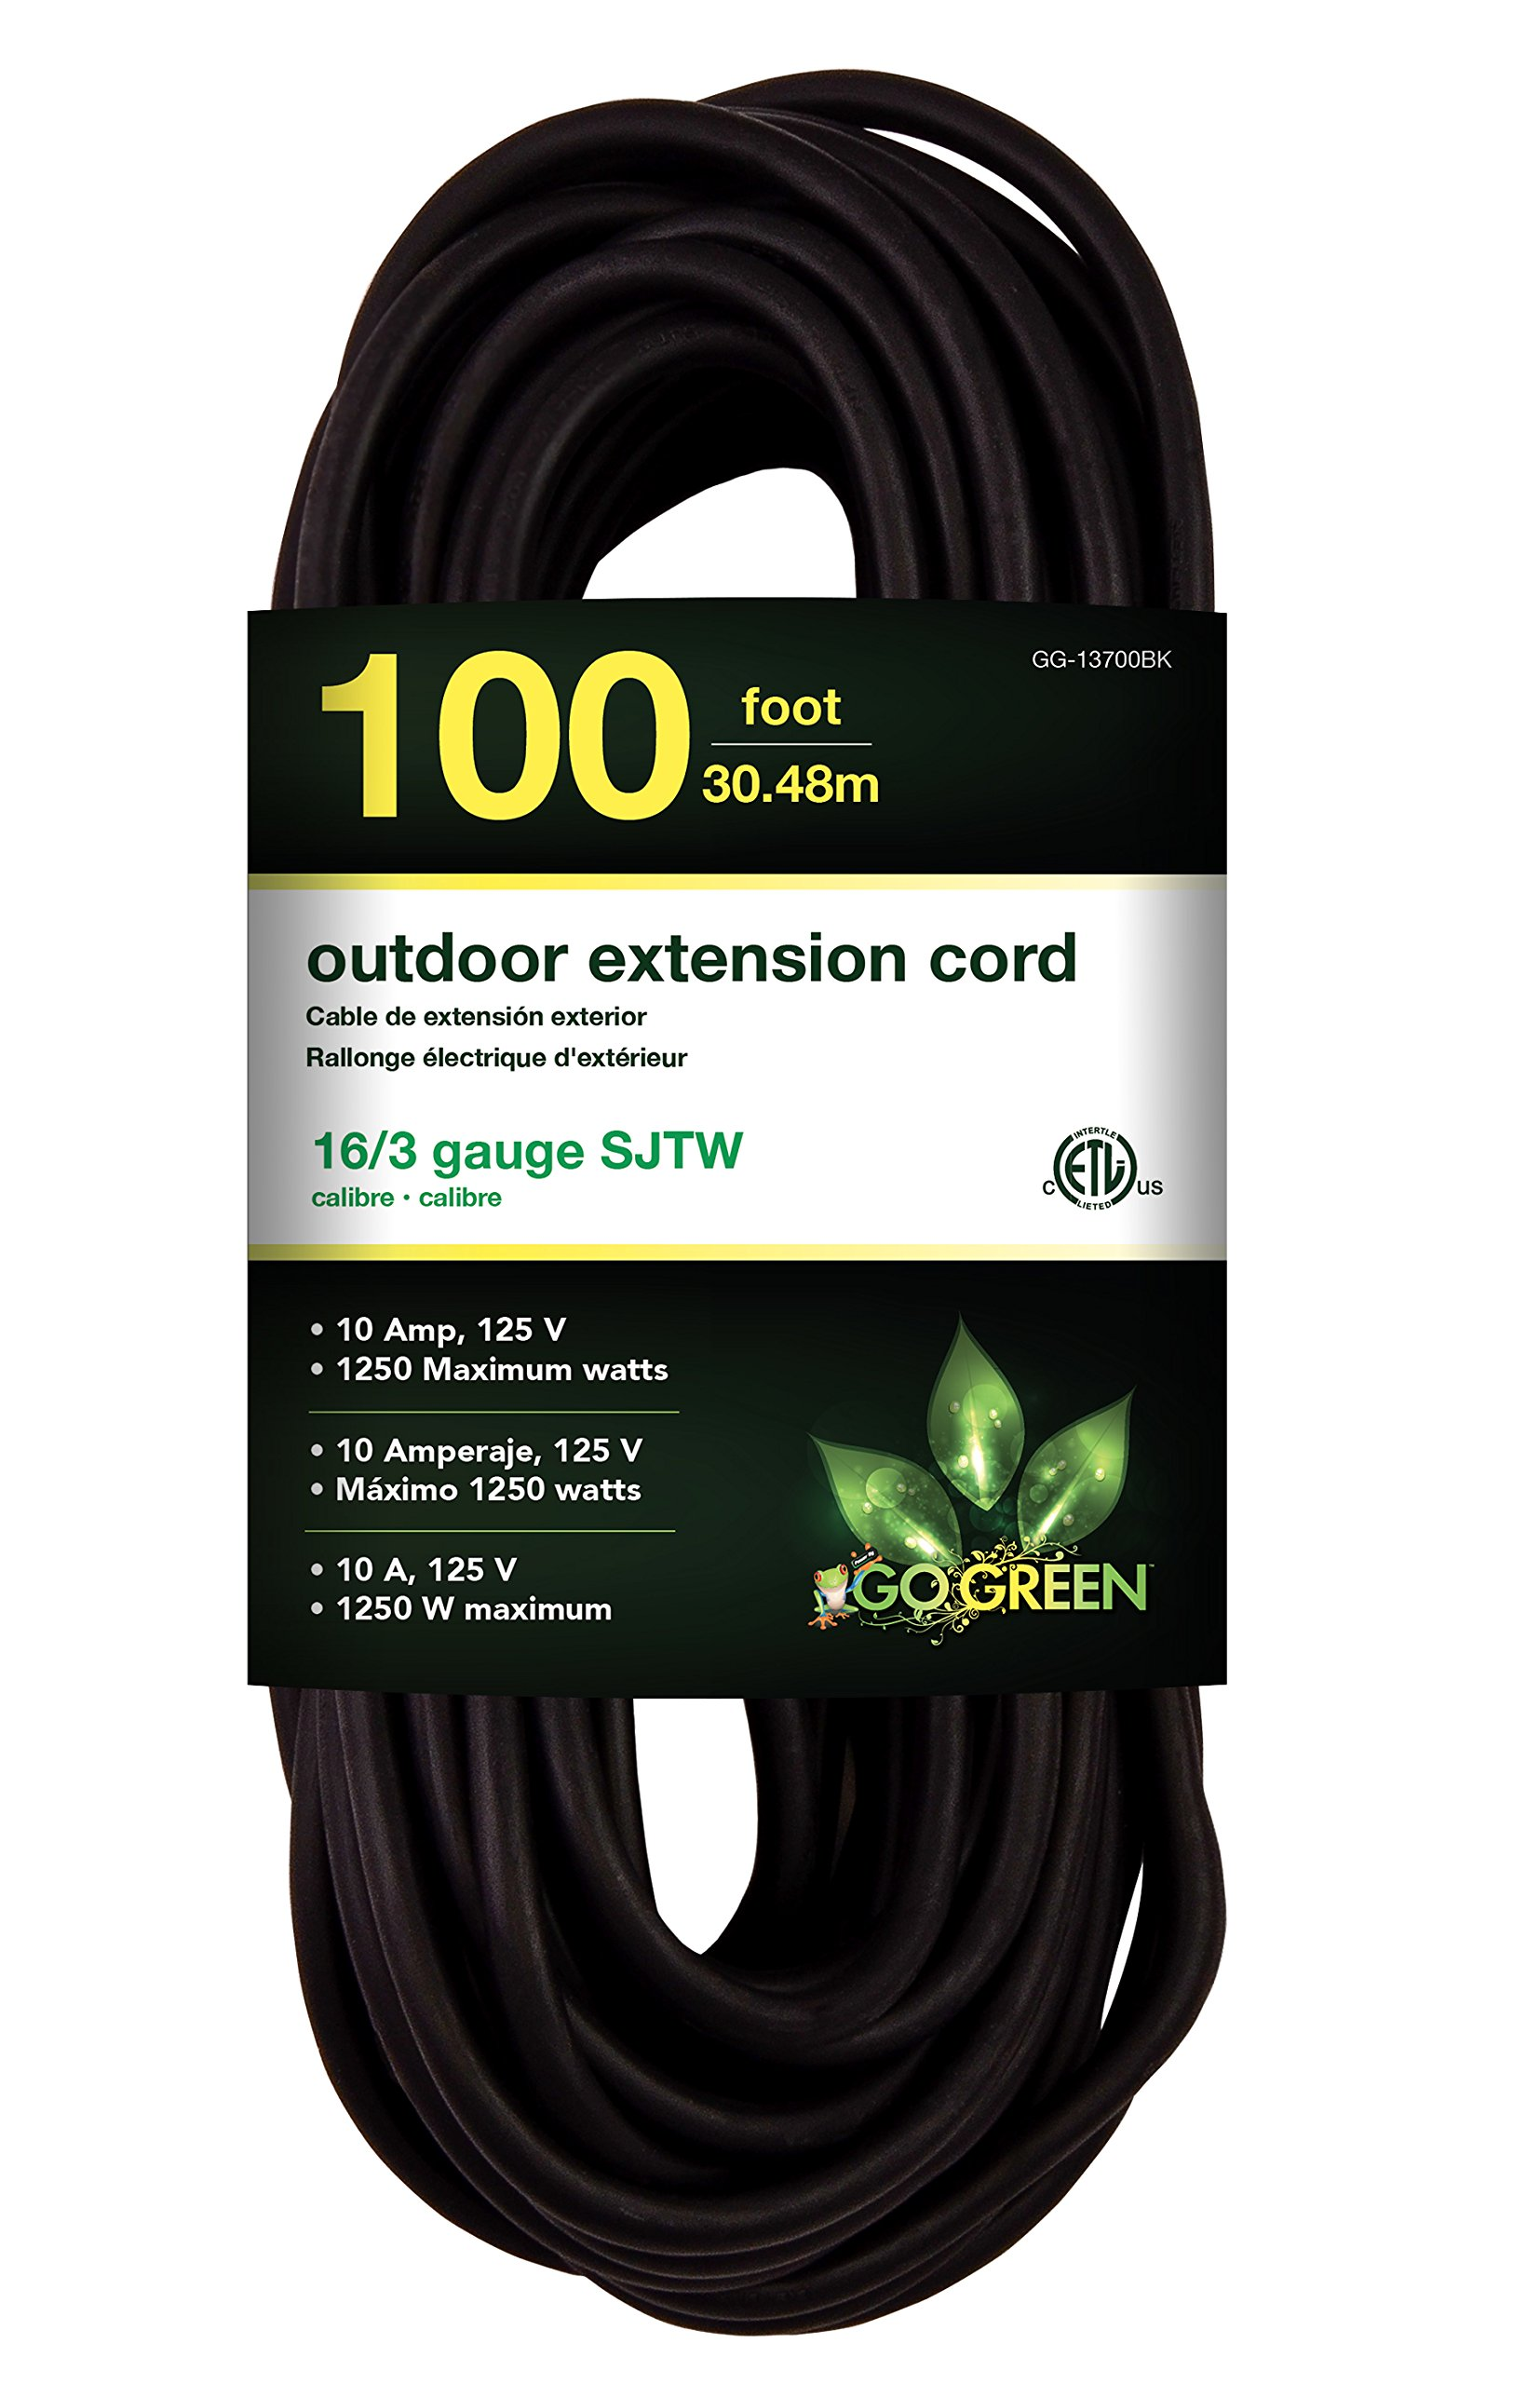 GoGreen Power GG-13700BK - 16/3 100' SJTW Outdoor Extension Cord - Black by Go Green Power Inc.